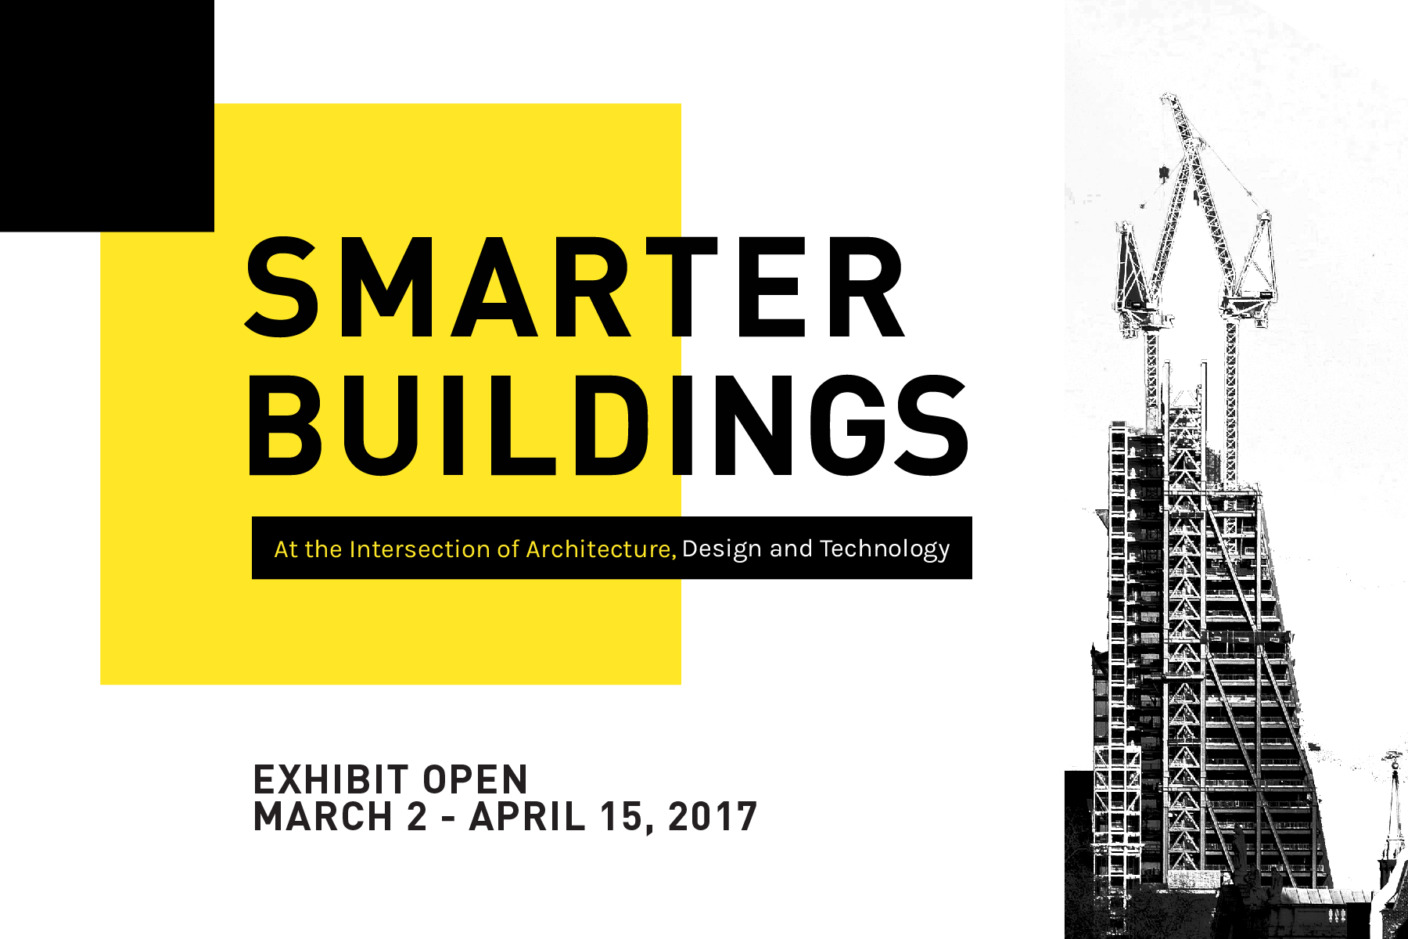 Smarter buildings use a new generation of tools that leverage today's data-rich environments to help create more capable, sustainable structures. The exhibit investigates a range of cutting-edge technologies in building science, from environmental controls and waste water systems to unique user interfaces and advanced construction methods.